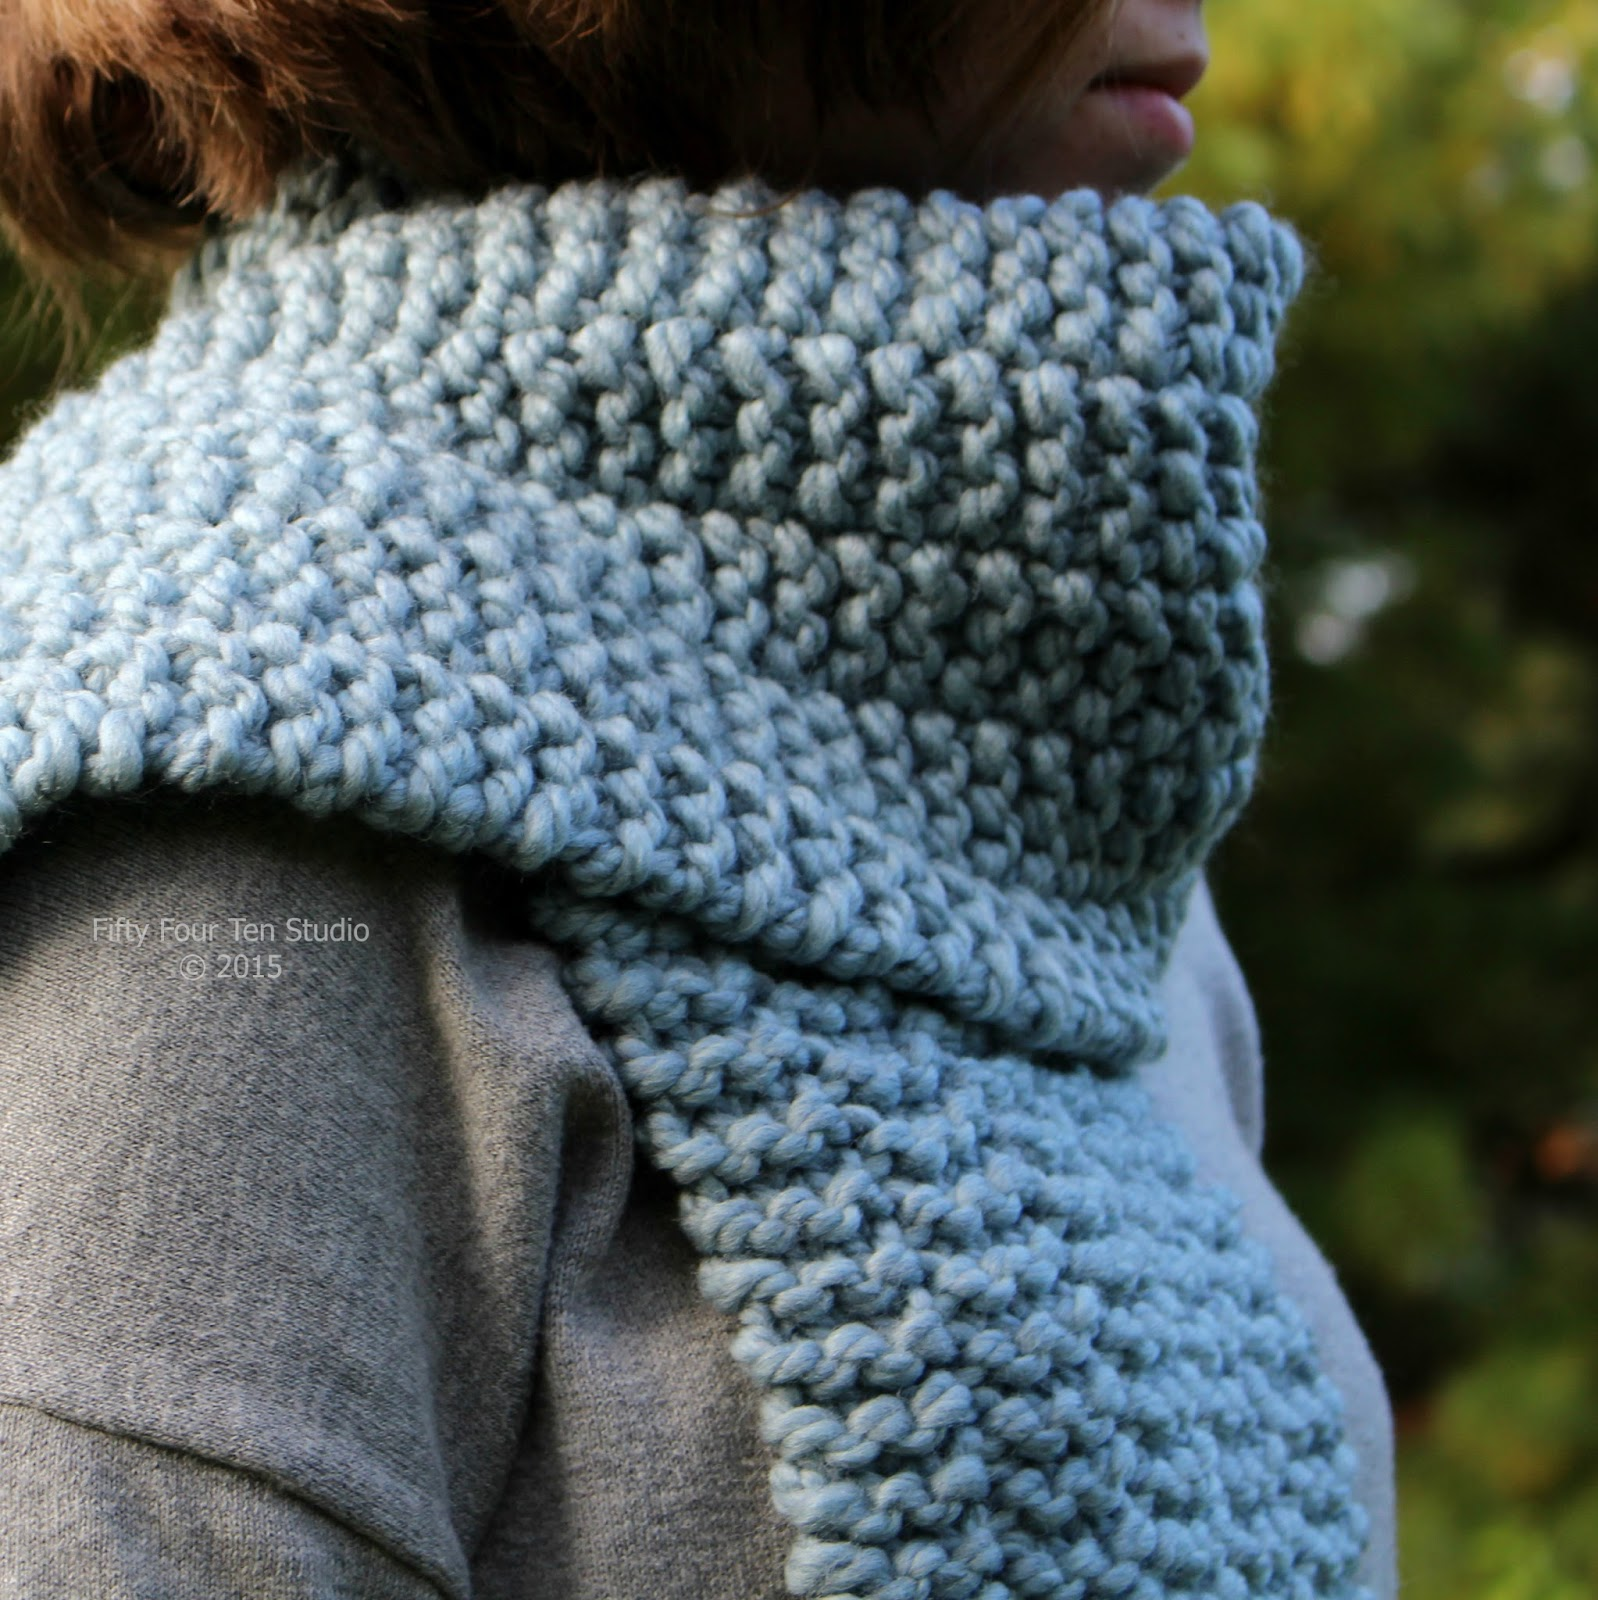 Mens Knit Scarf Pattern Easy : Fifty Four Ten Studio: New Easy Scarf Knitting Pattern - Side Line Scarf